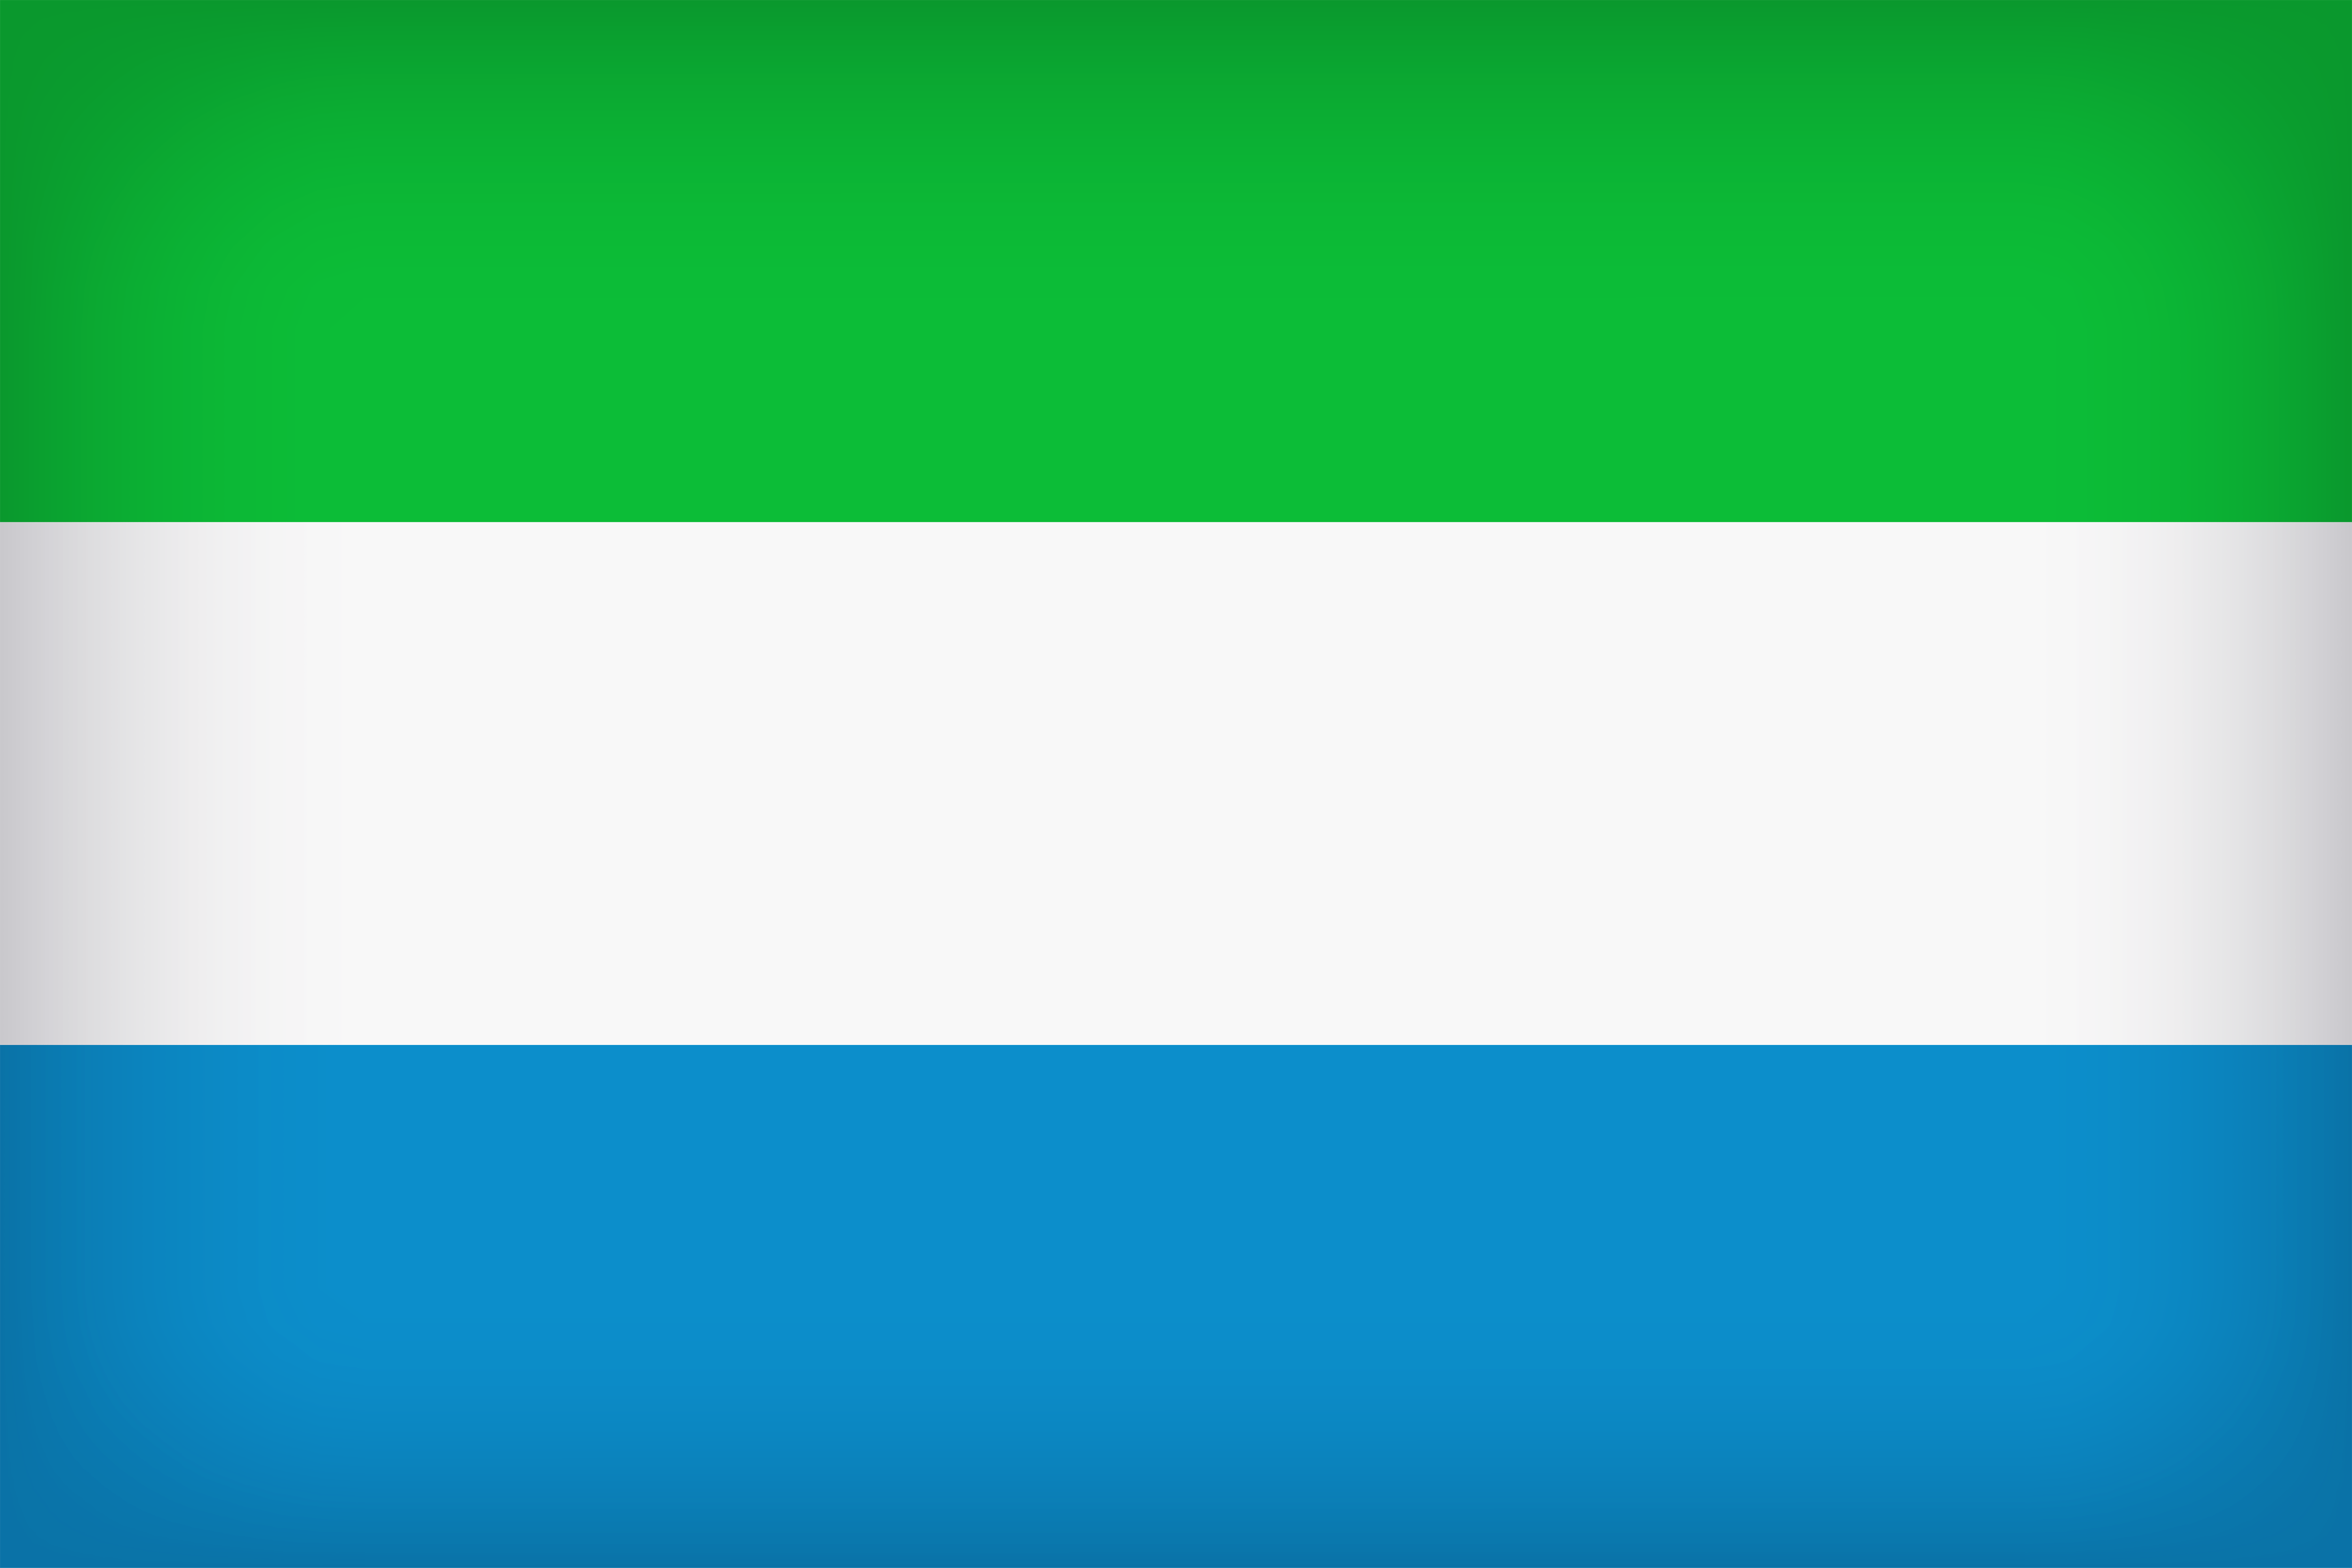 Sierra Leone Large Flag | Gallery Yopriceville - High-Quality ...